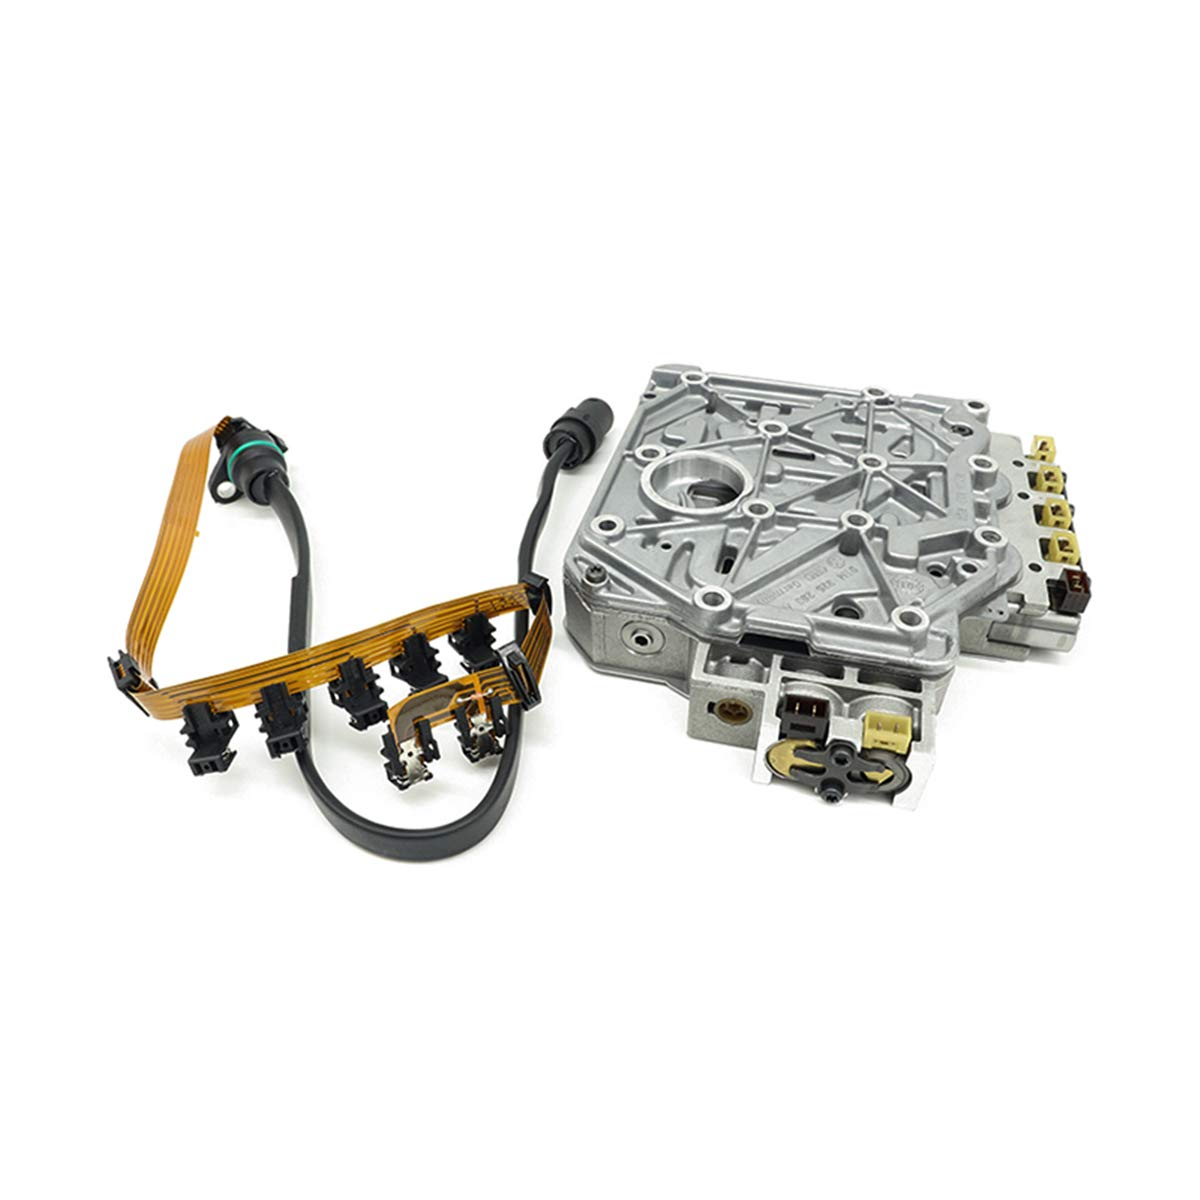 Automatic Transmission Valve Body 01M Transmission Wiring Harness Replacement for 99-05 VW 2.0L Jetta Golf MK4 TDI Engine Beetle 4 Speed 01M325039F 01M325283A by coolautocore (Image #3)